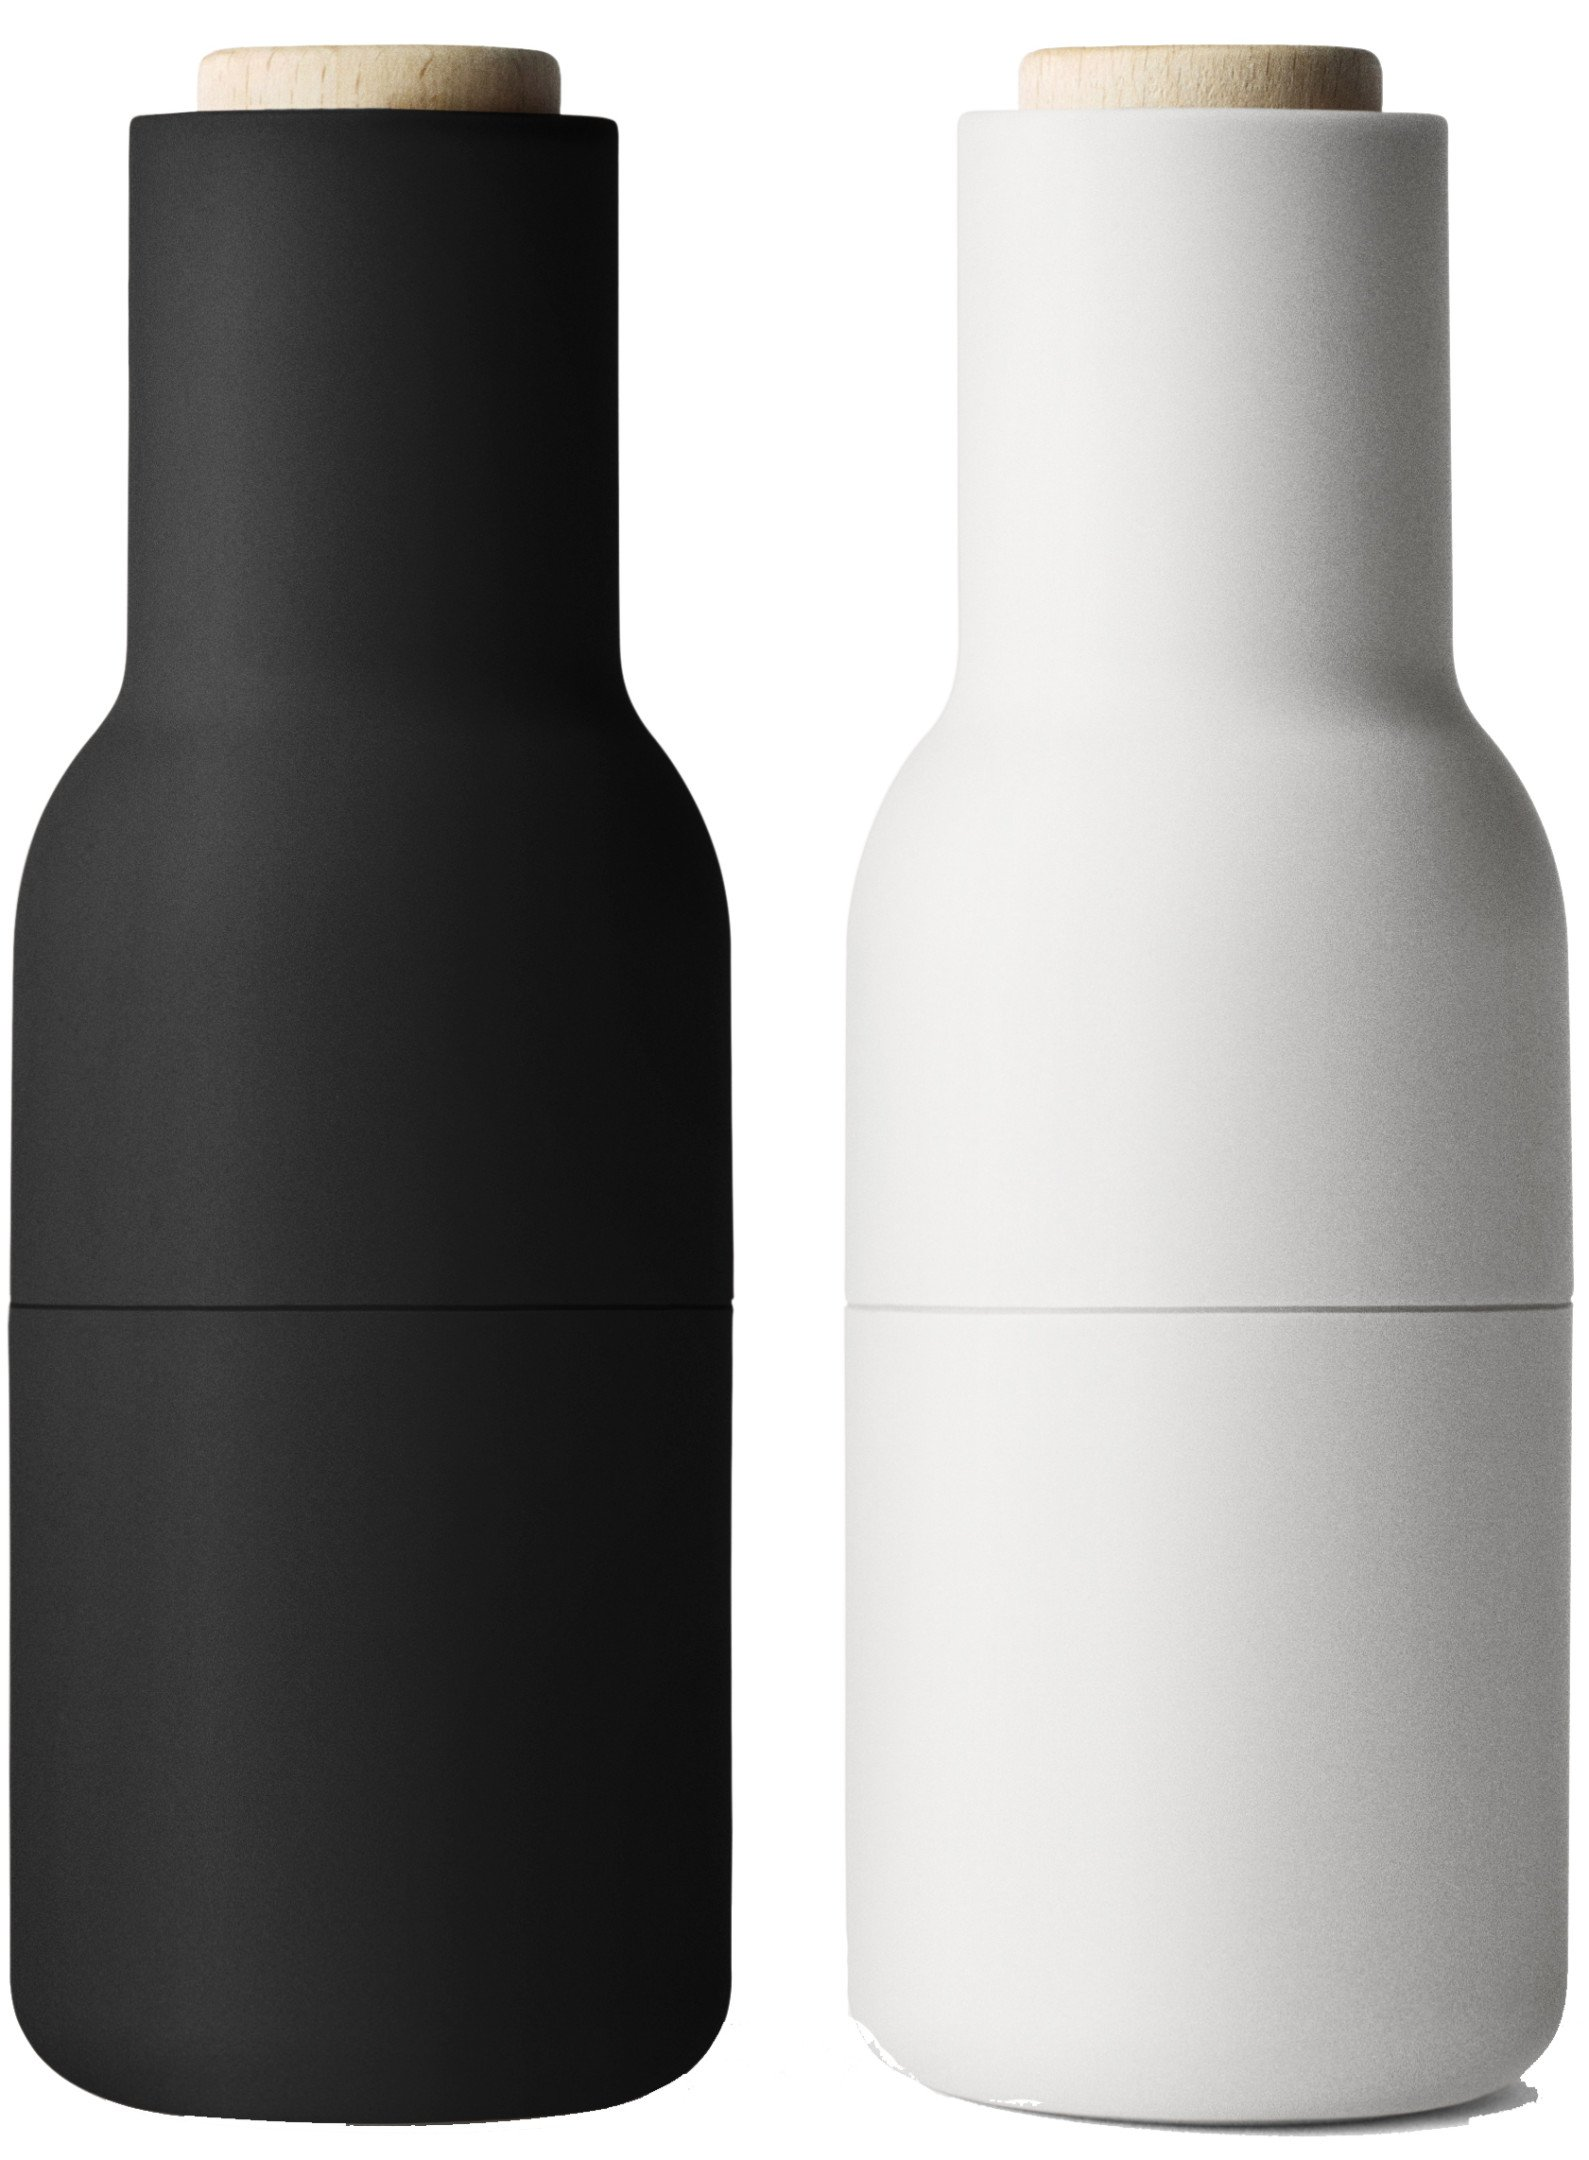 Set of Two Bottle Grinders Small Ash/Carbon Beech by Norm Architects for Menu